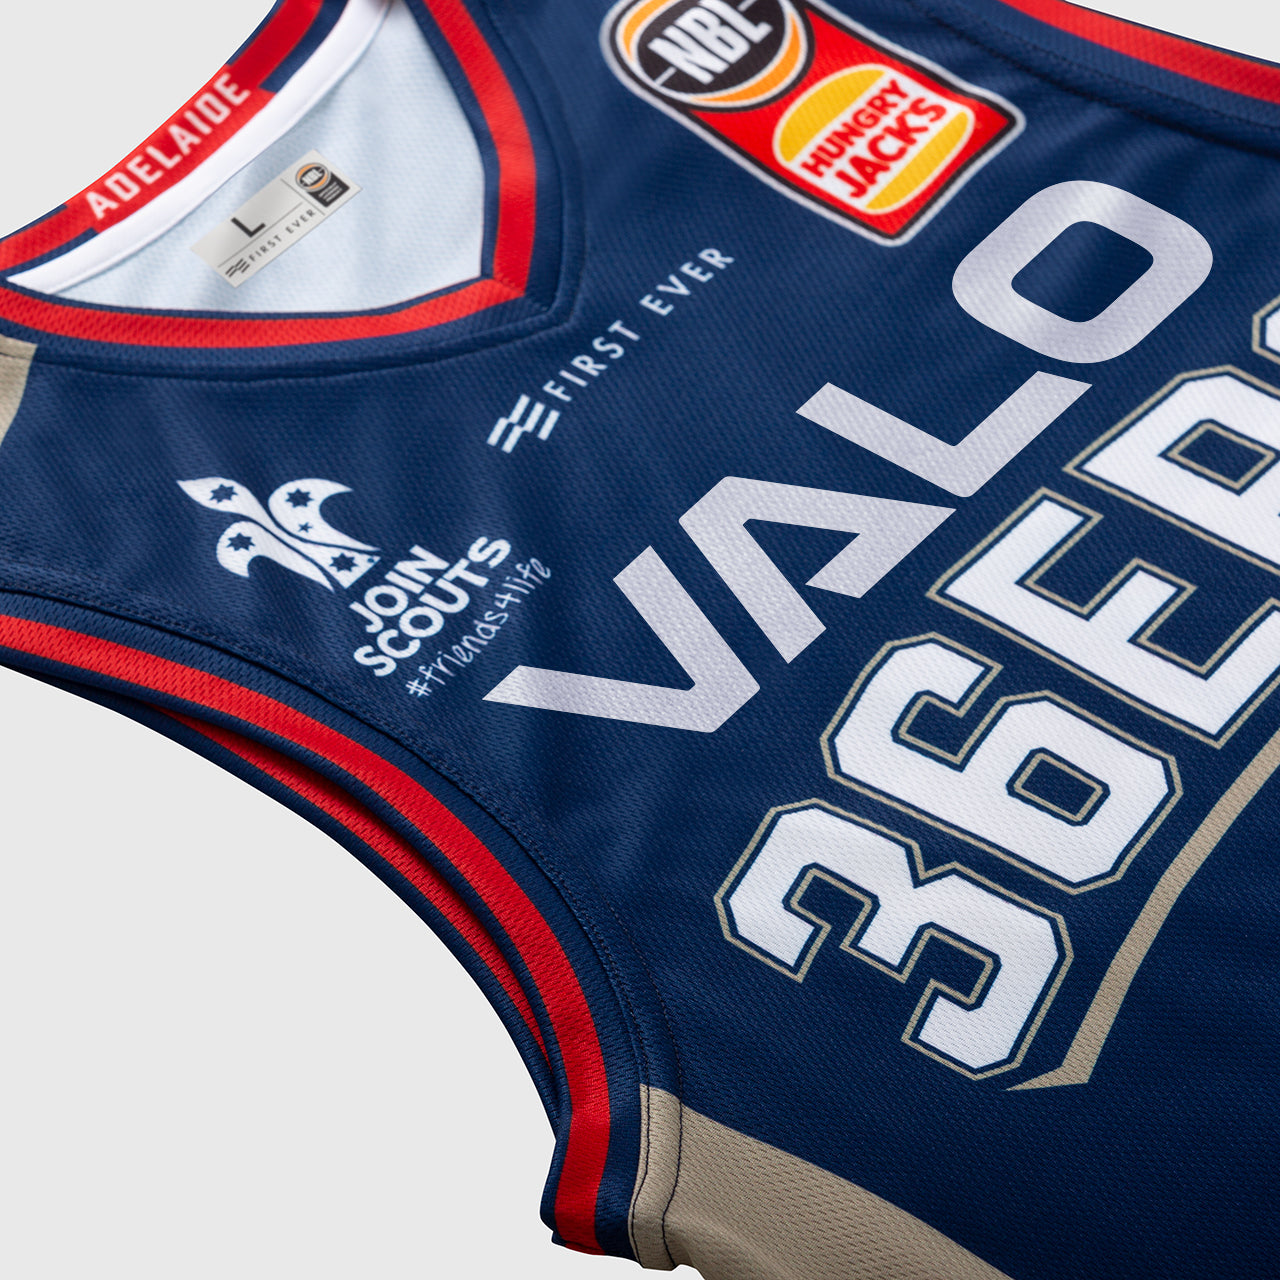 Adelaide 36ers 18/19 Authentic Jersey - Daniel Johnson